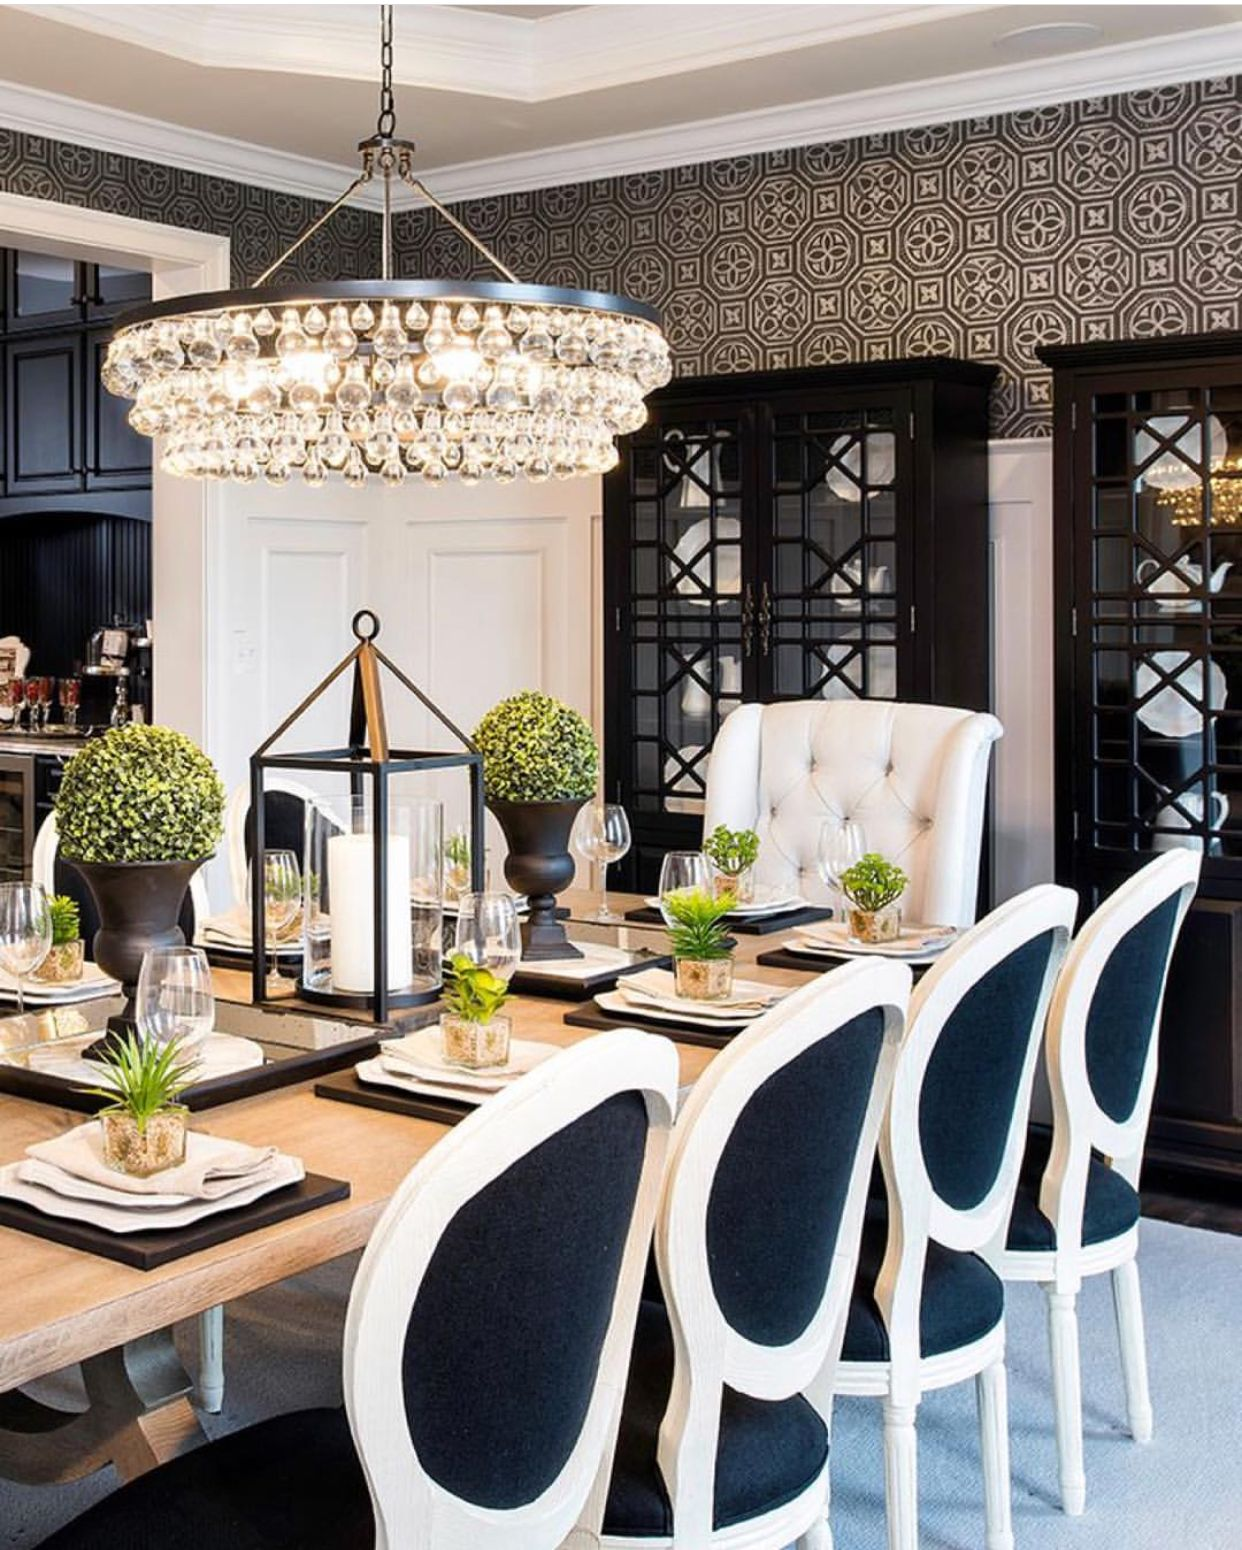 Black And White Dinningroom Dining Room Decor Elegant Luxury Dining Room Dining Room Centerpiece